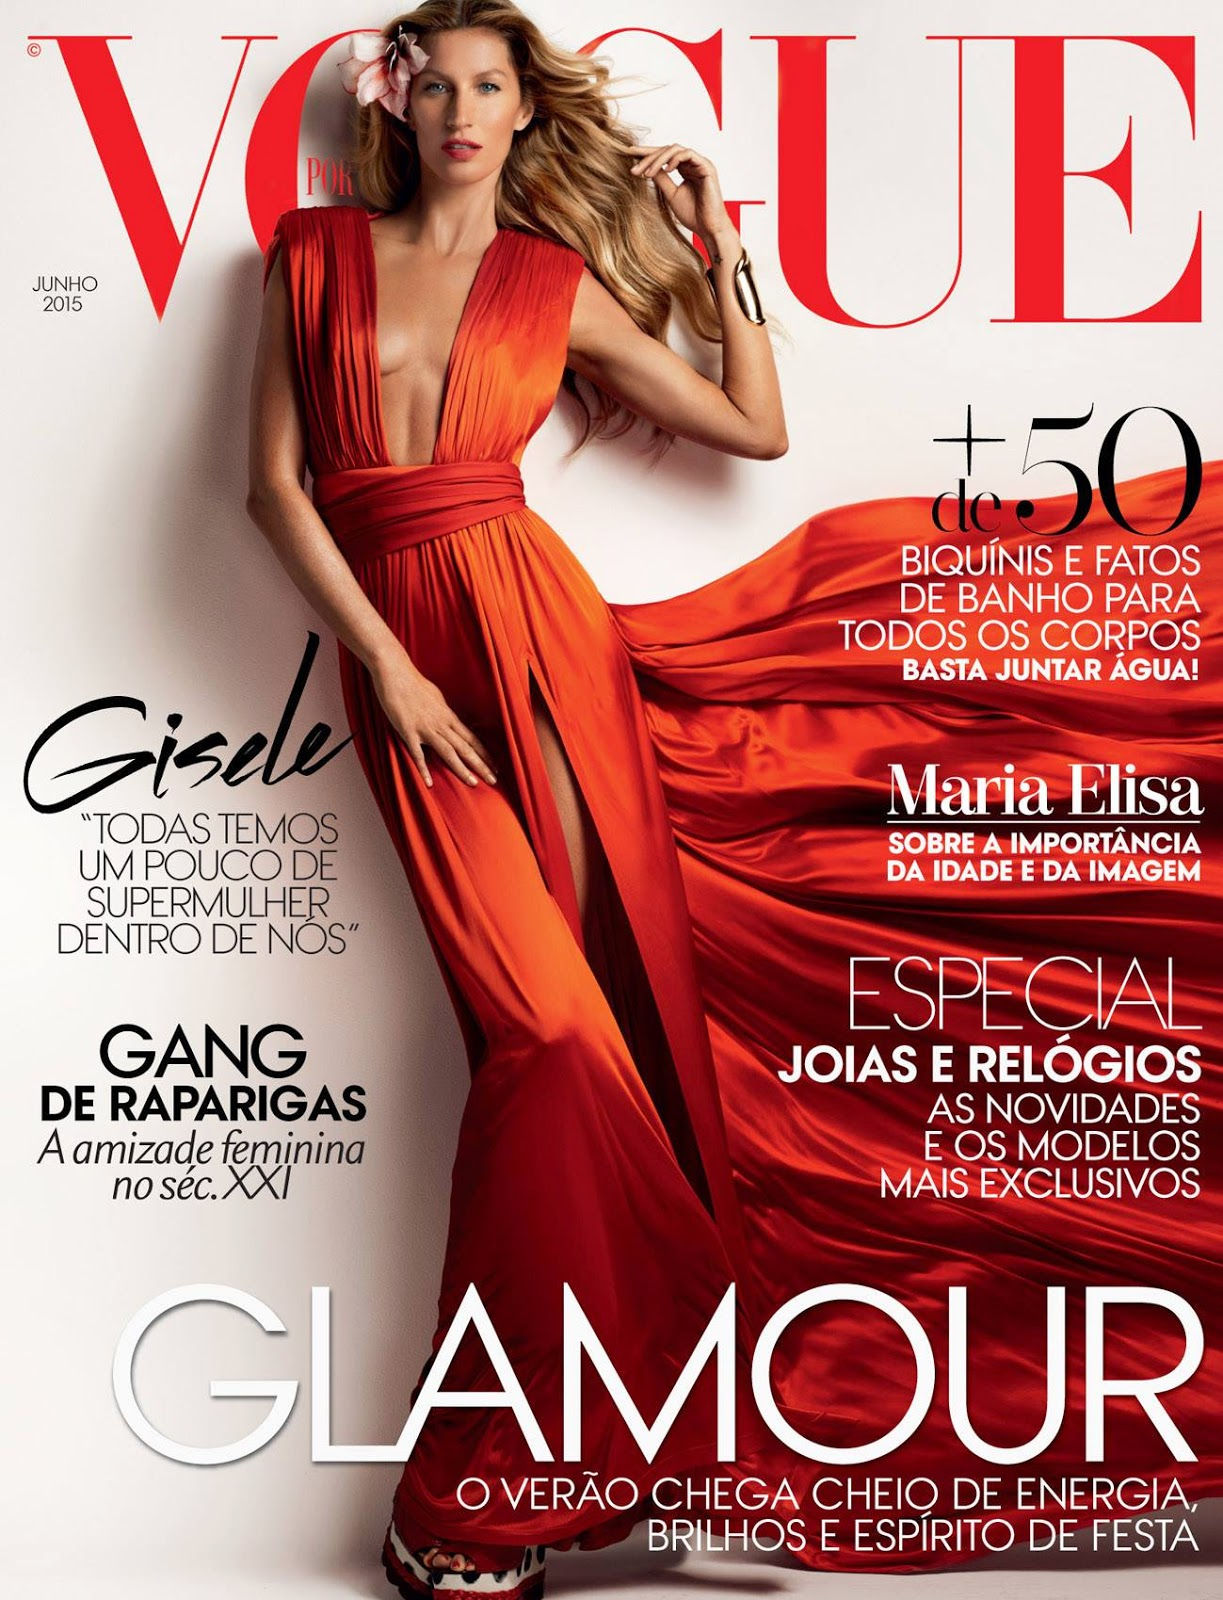 Actress, Producer, Supermodel @ Gisele Bundchen for Vogue Portugal June 2015